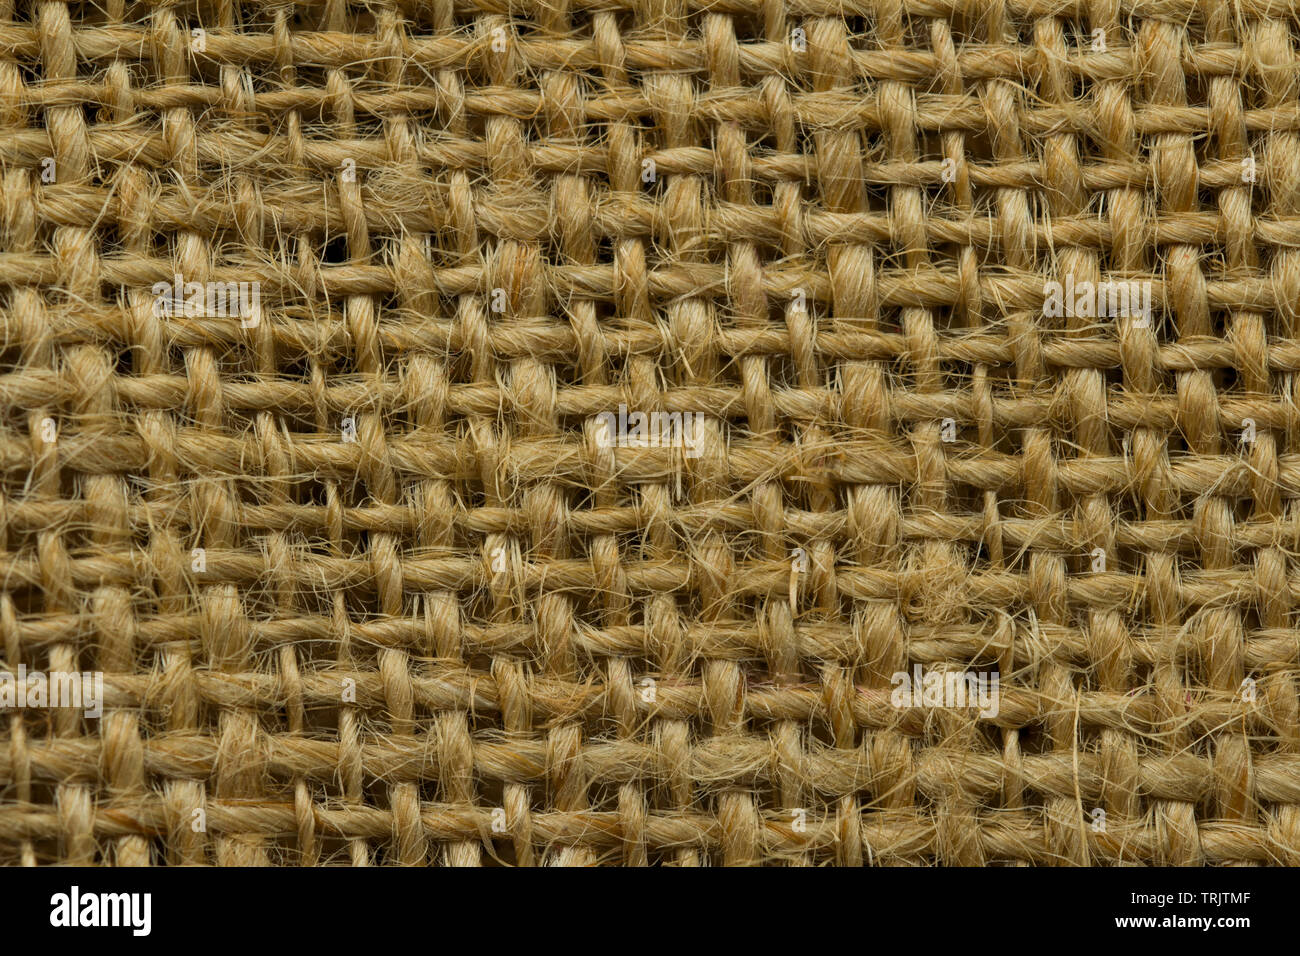 Grunge Background of textile texture. Dark Natural linen rough texture for background. Fabric textured linen bag.Sacking Background - Stock Image